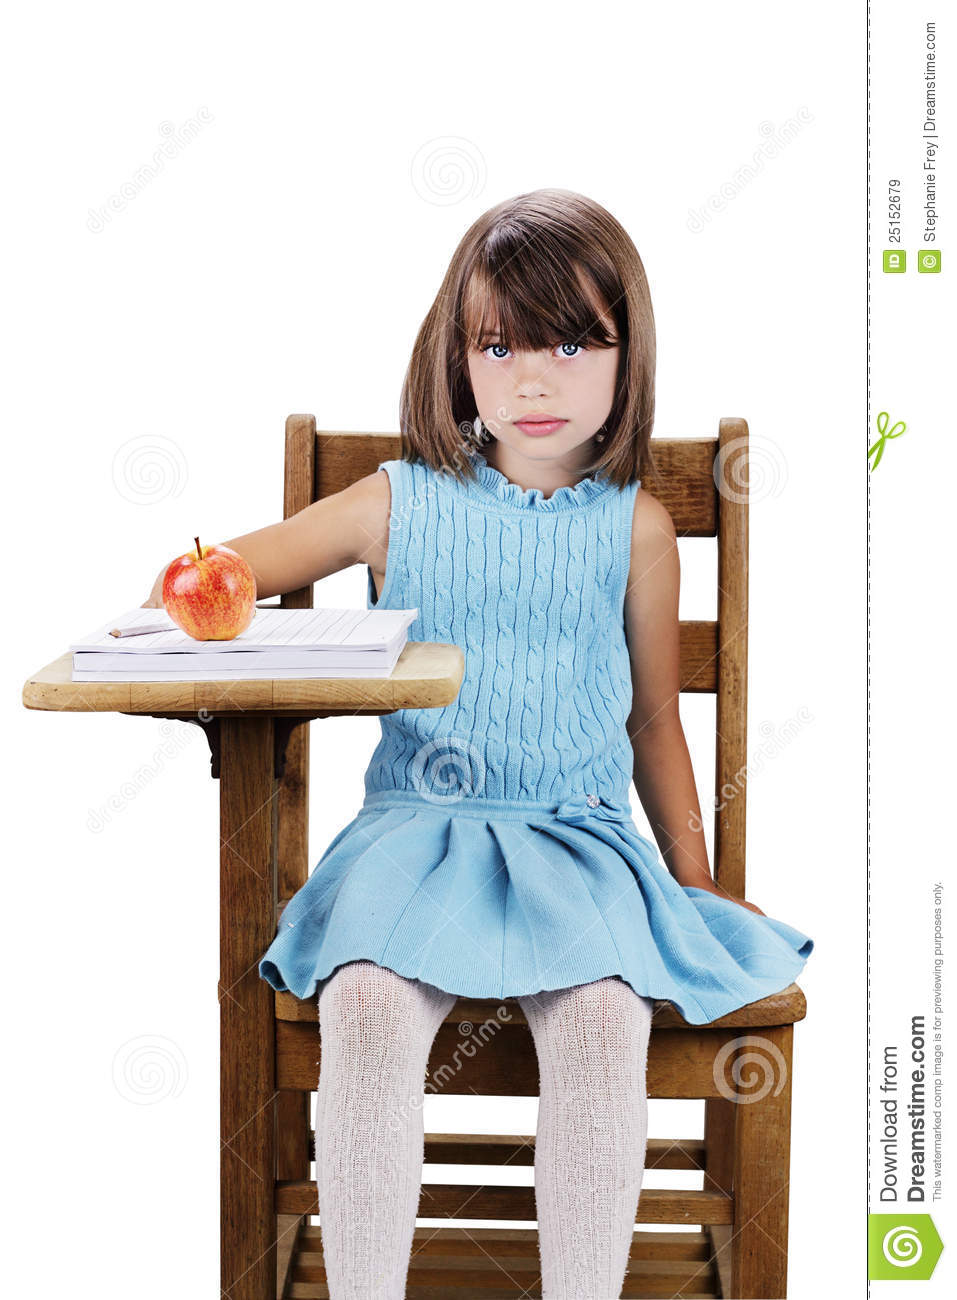 Little Girl Sitting at Desk 957 x 1300